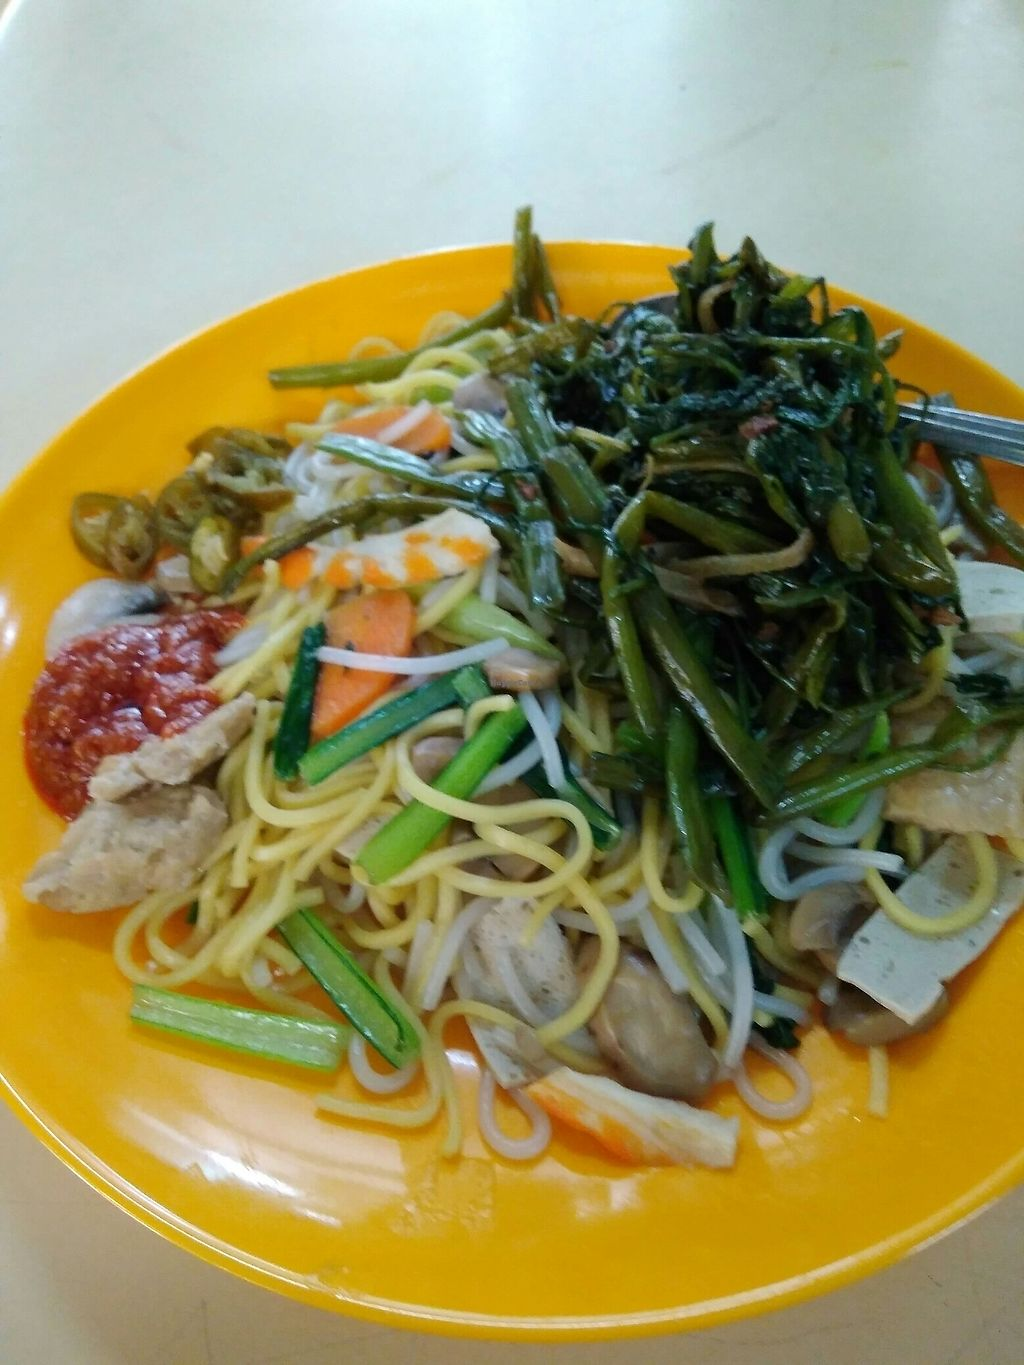 "Photo of Tian Yuan Vegetarian Stall  by <a href=""/members/profile/RichardLee"">RichardLee</a> <br/>Hokkien Noodle with added Kang Kong vegetable <br/> July 11, 2017  - <a href='/contact/abuse/image/95637/278970'>Report</a>"